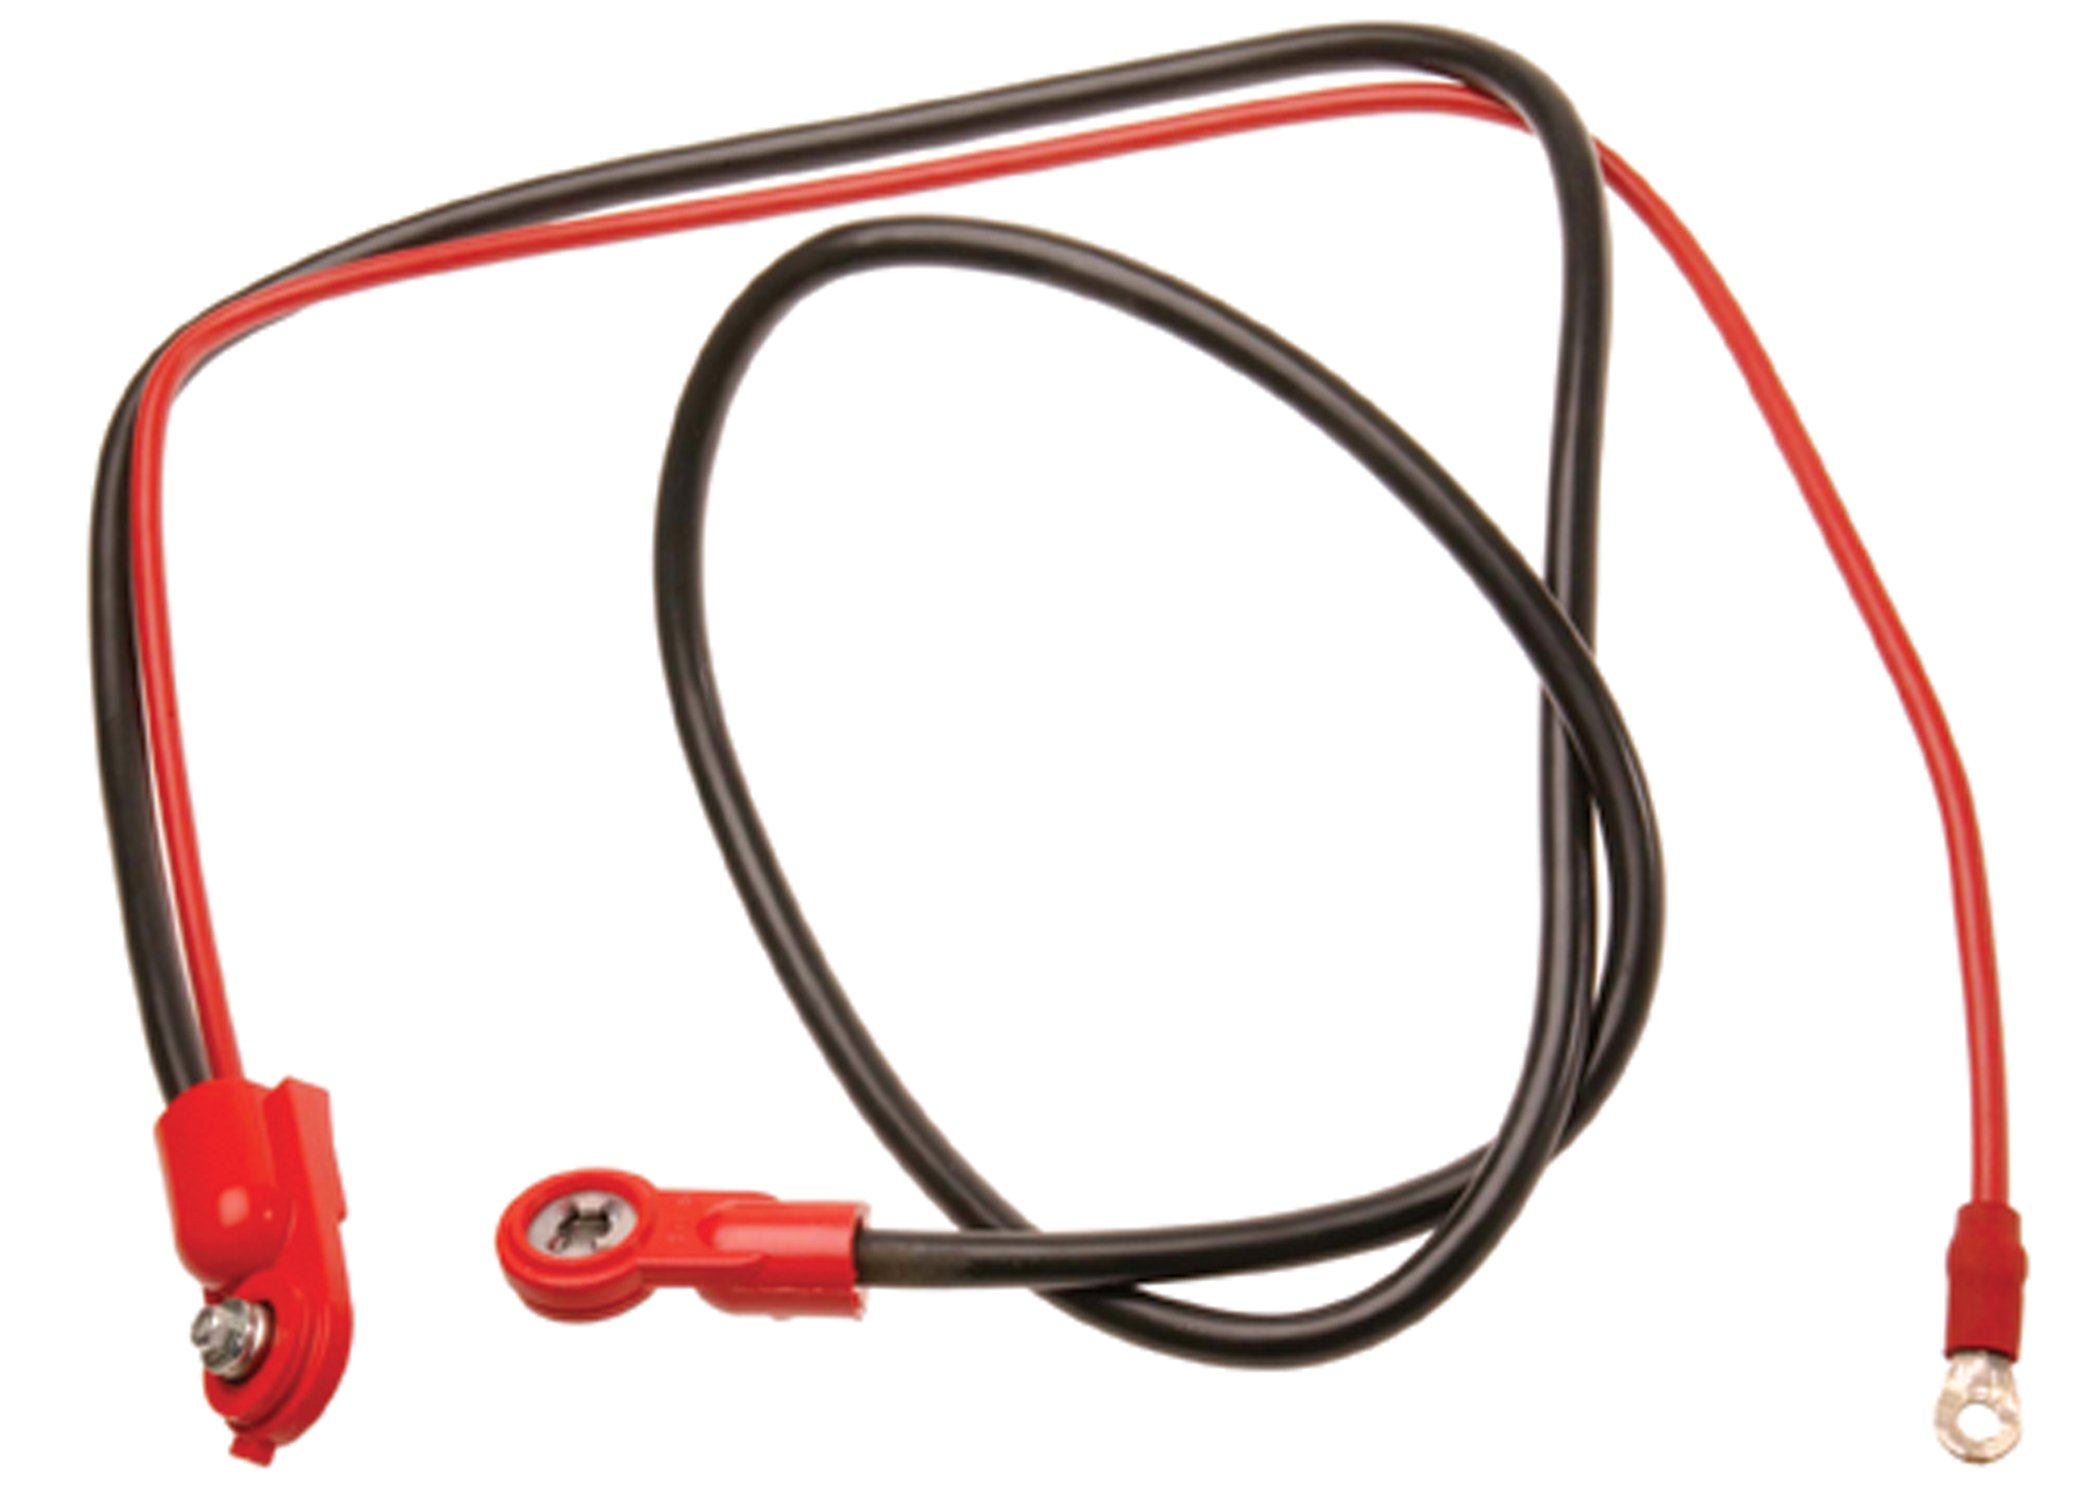 ACDelco 2MX65-1 GM Original Equipment Positive Battery to Battery Cable by ACDelco